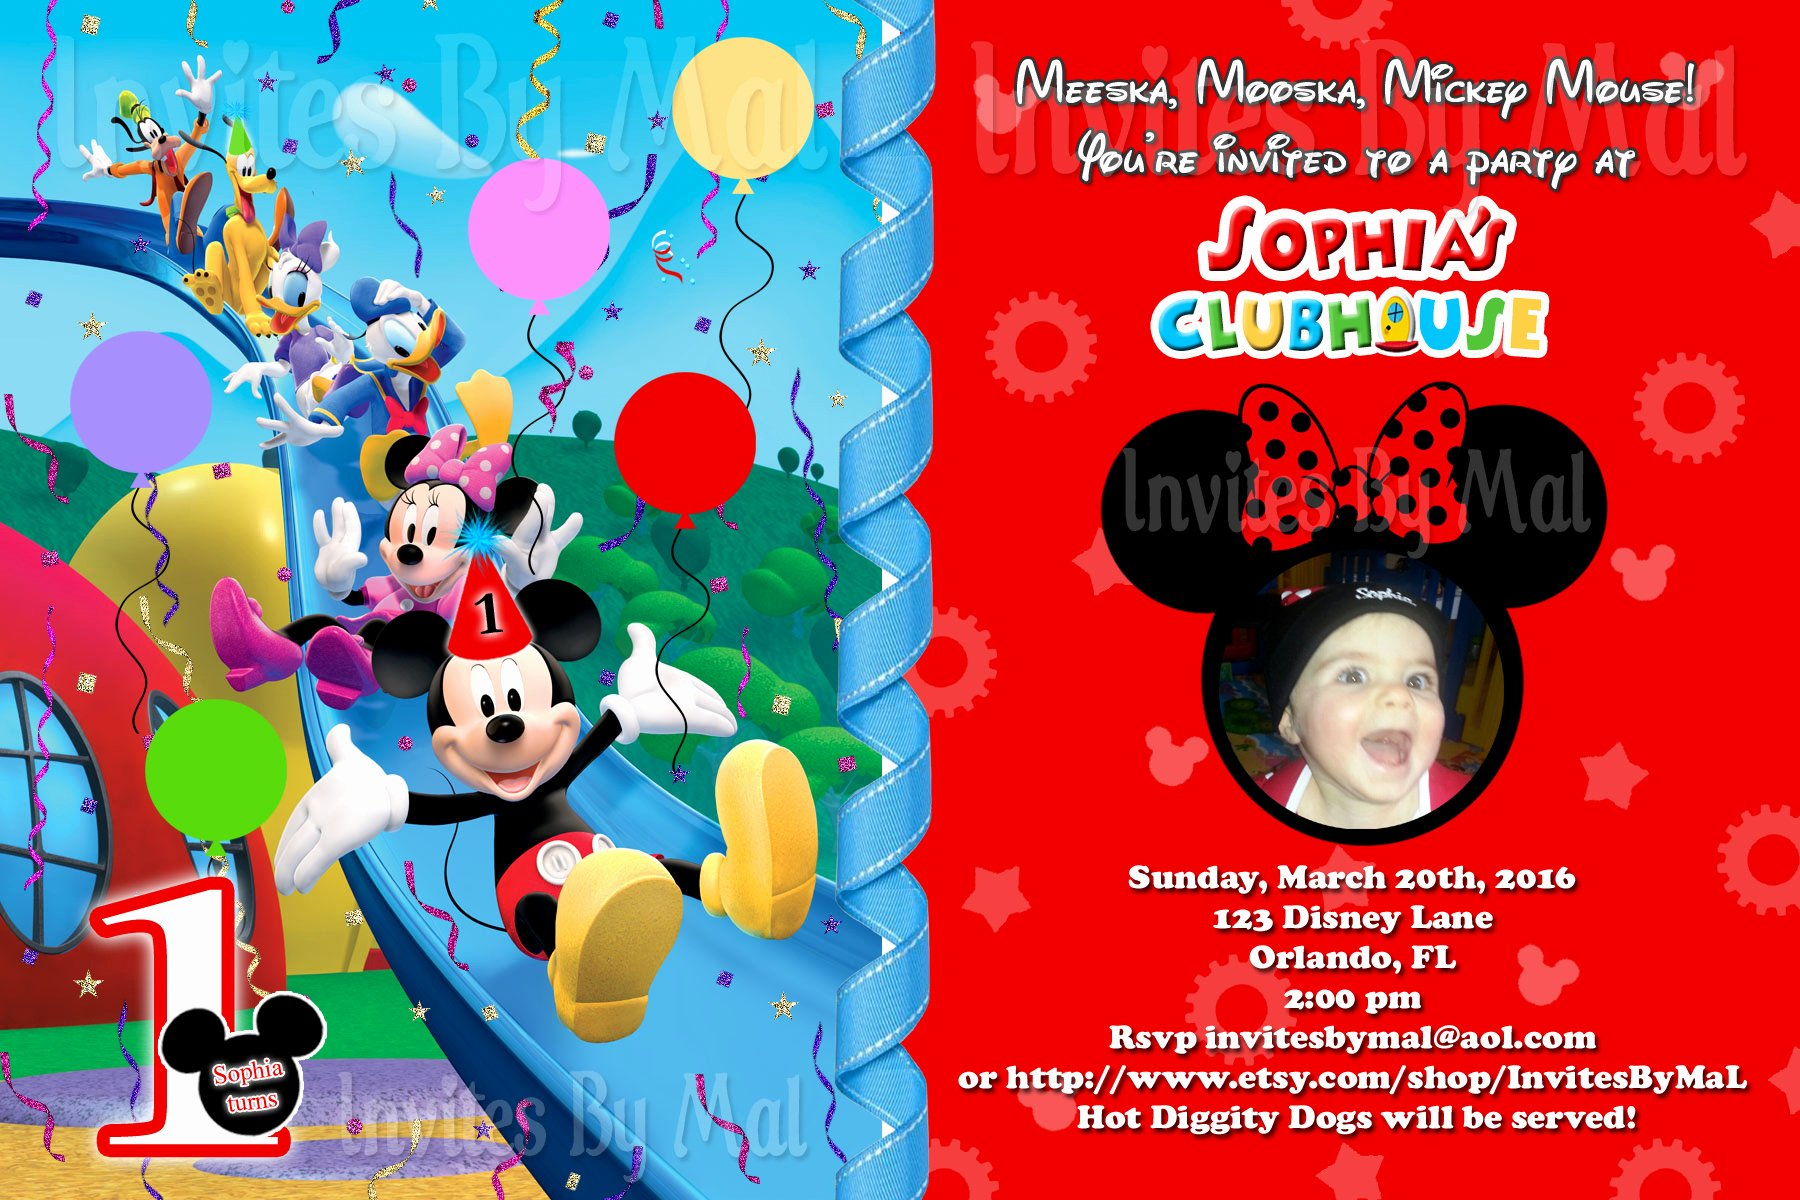 Mickey Mouse Clubhouse Invitation Template Beautiful Mickey Mouse Clubhouse Invitations for Special Birthday Party